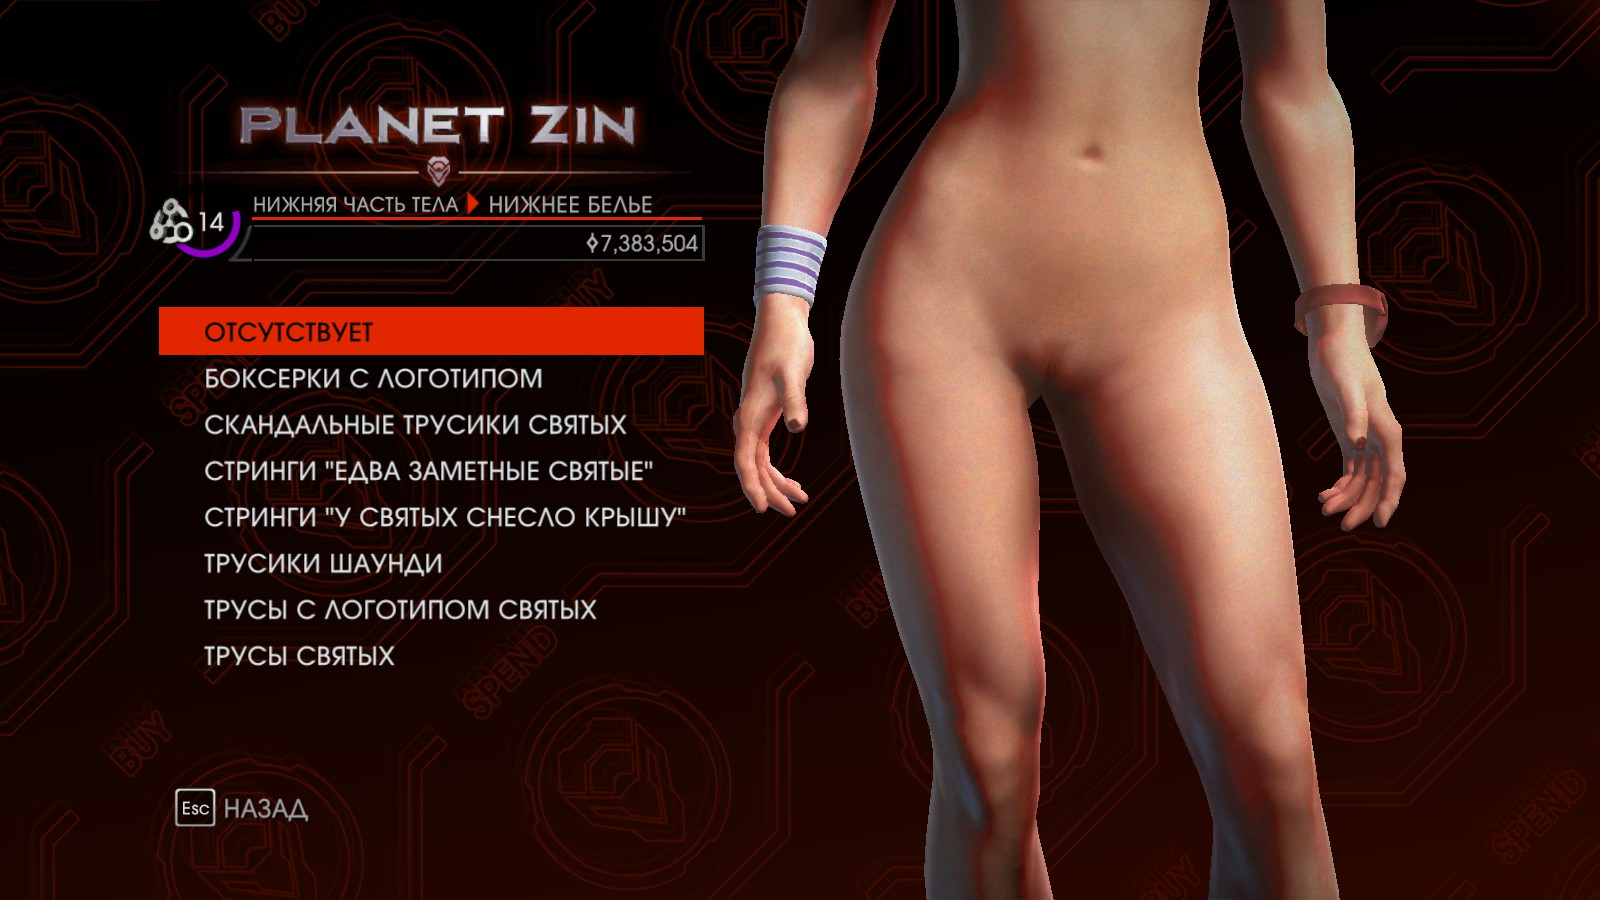 Nude tit saints row anime photos